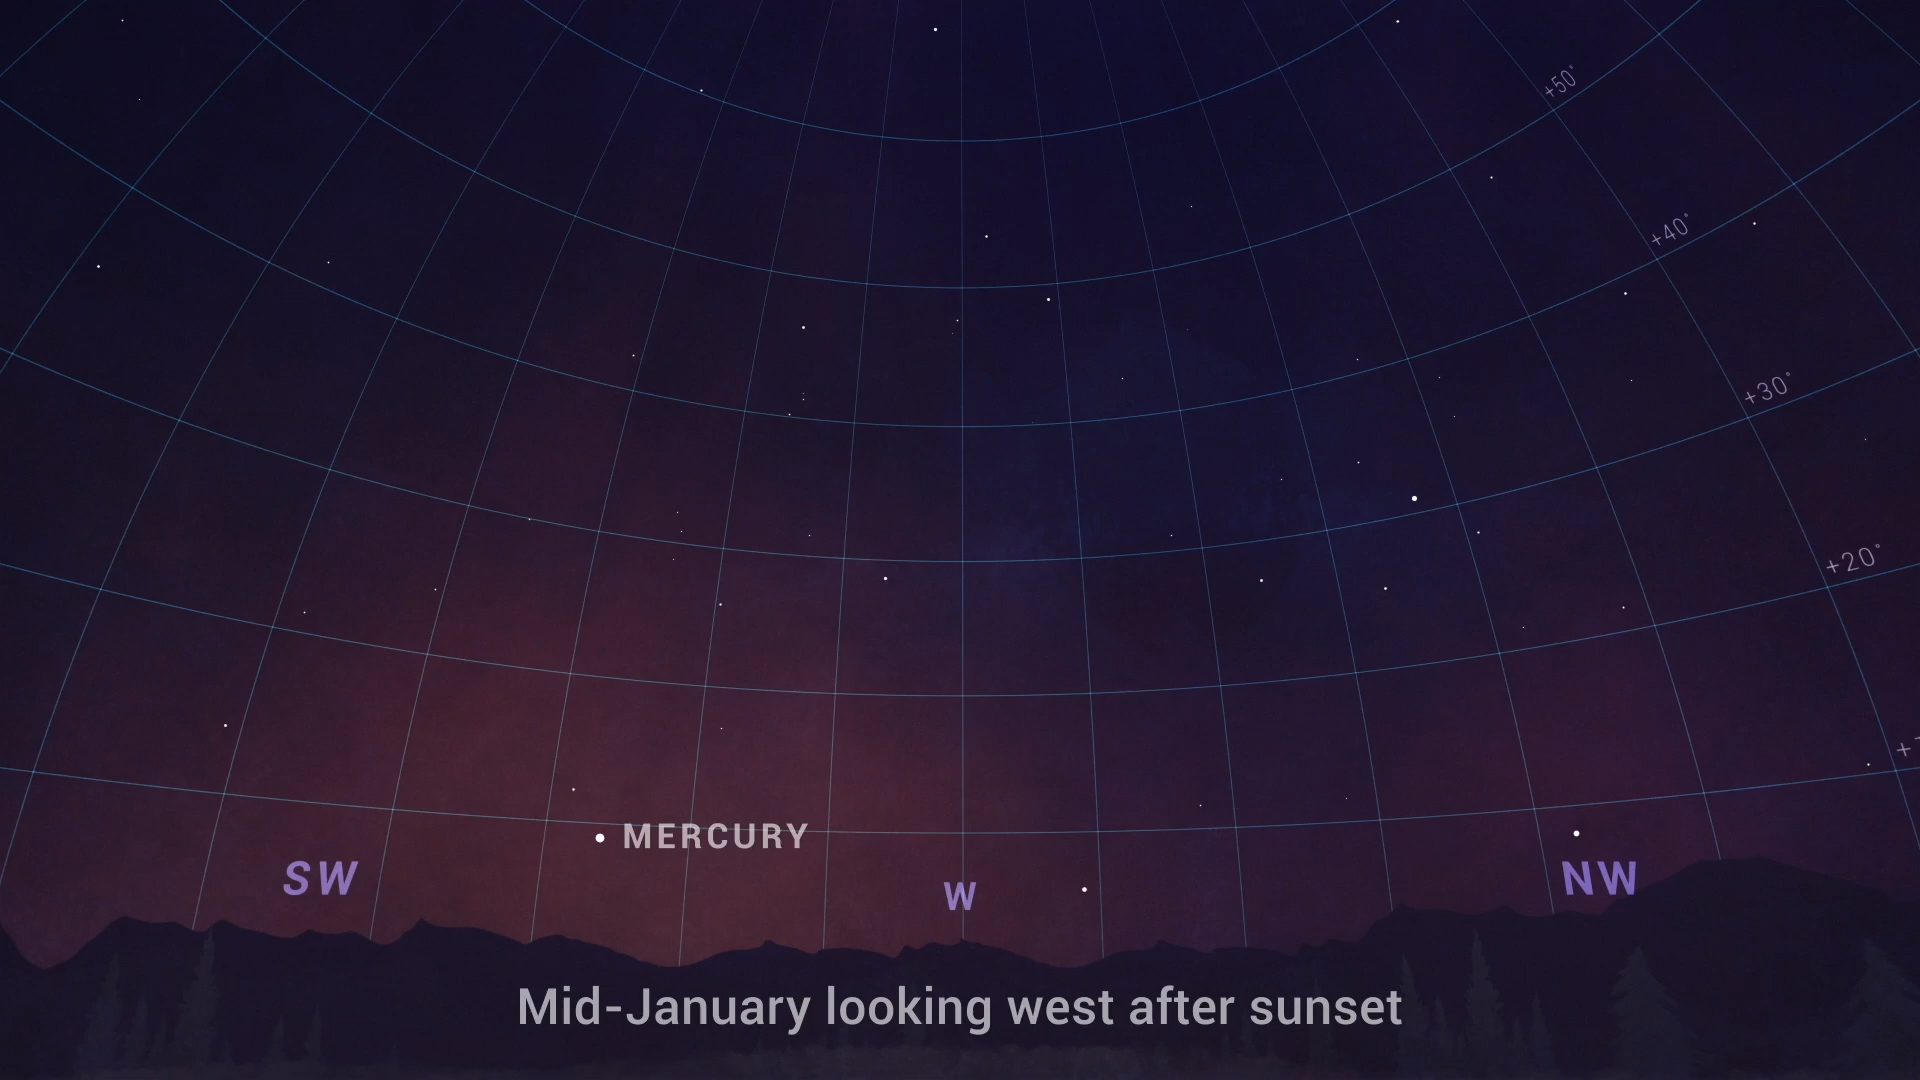 Sky chart showing where to find Mercury in the sky in late January.